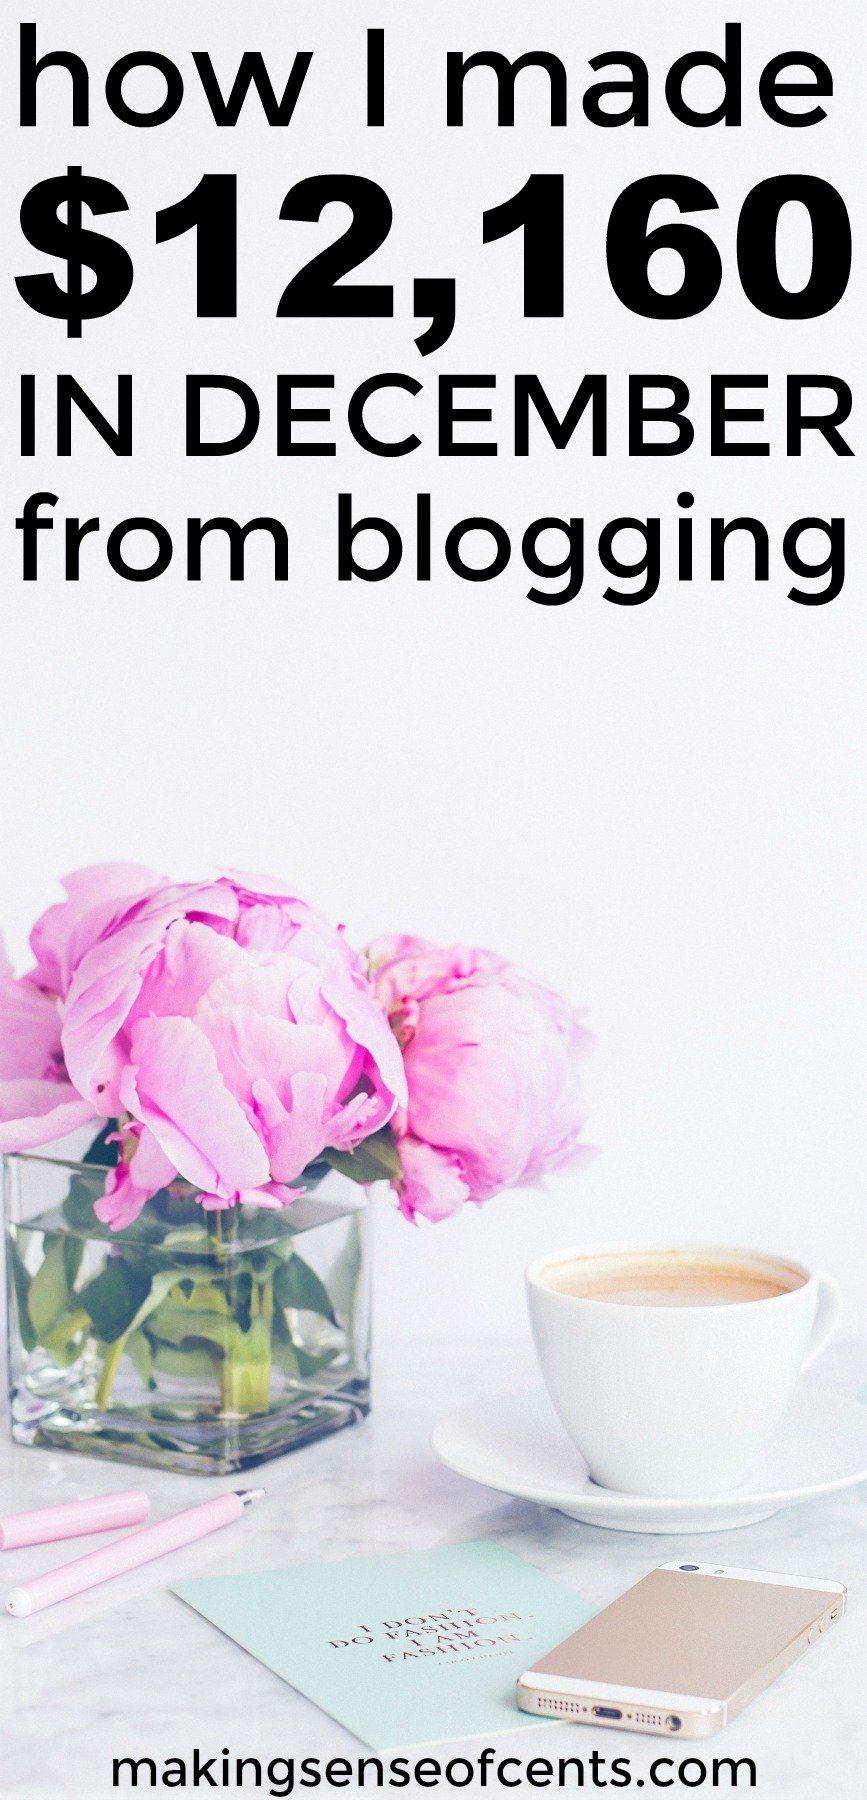 Find out how I made $12,160 in December from blogging and working from home.